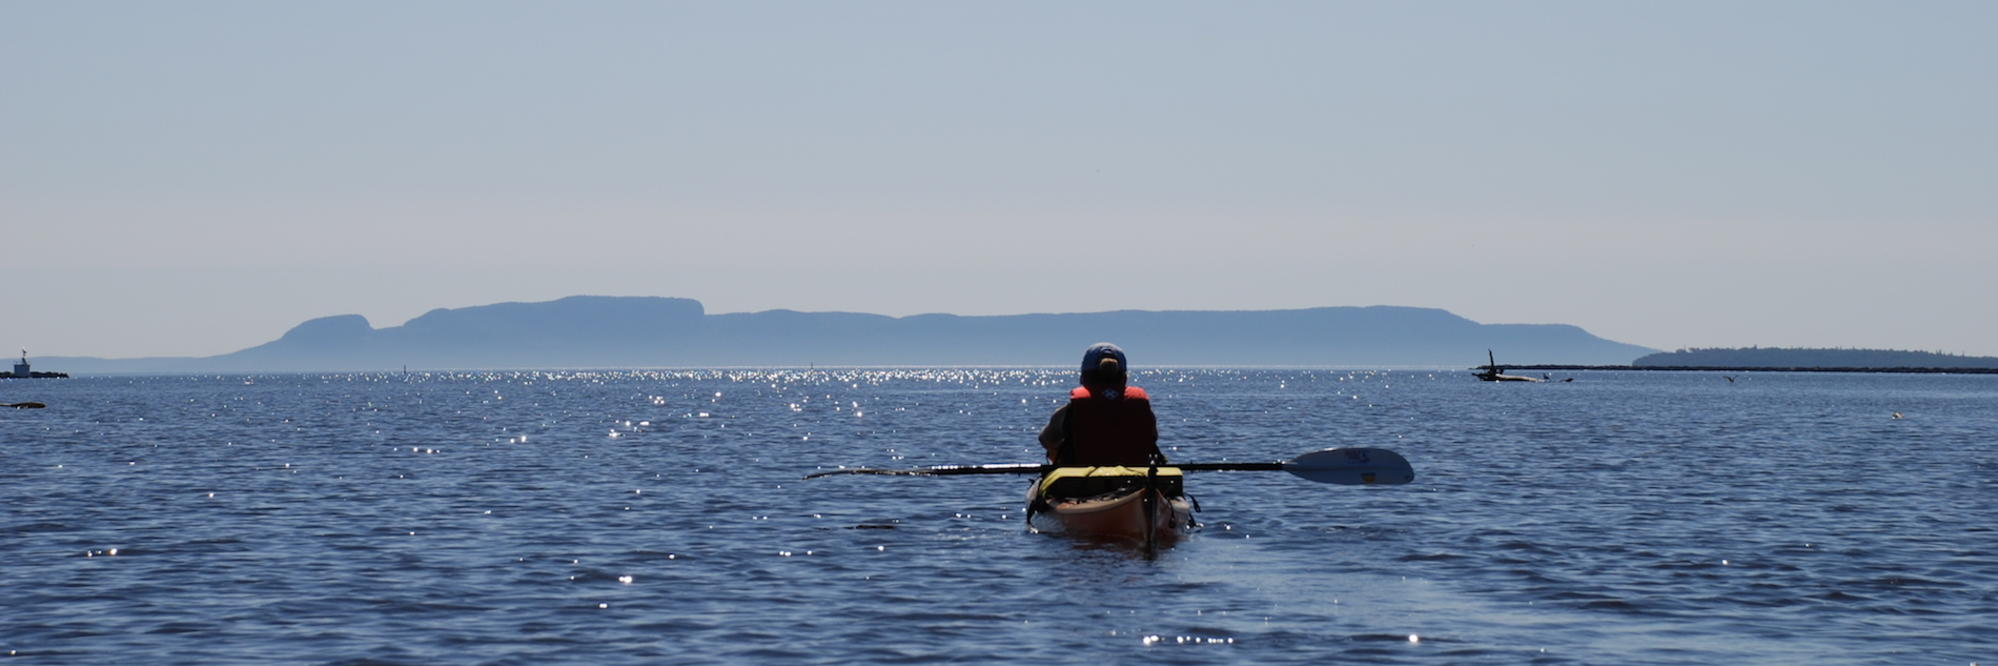 Kayaker paddling in front of Sleeping Giant